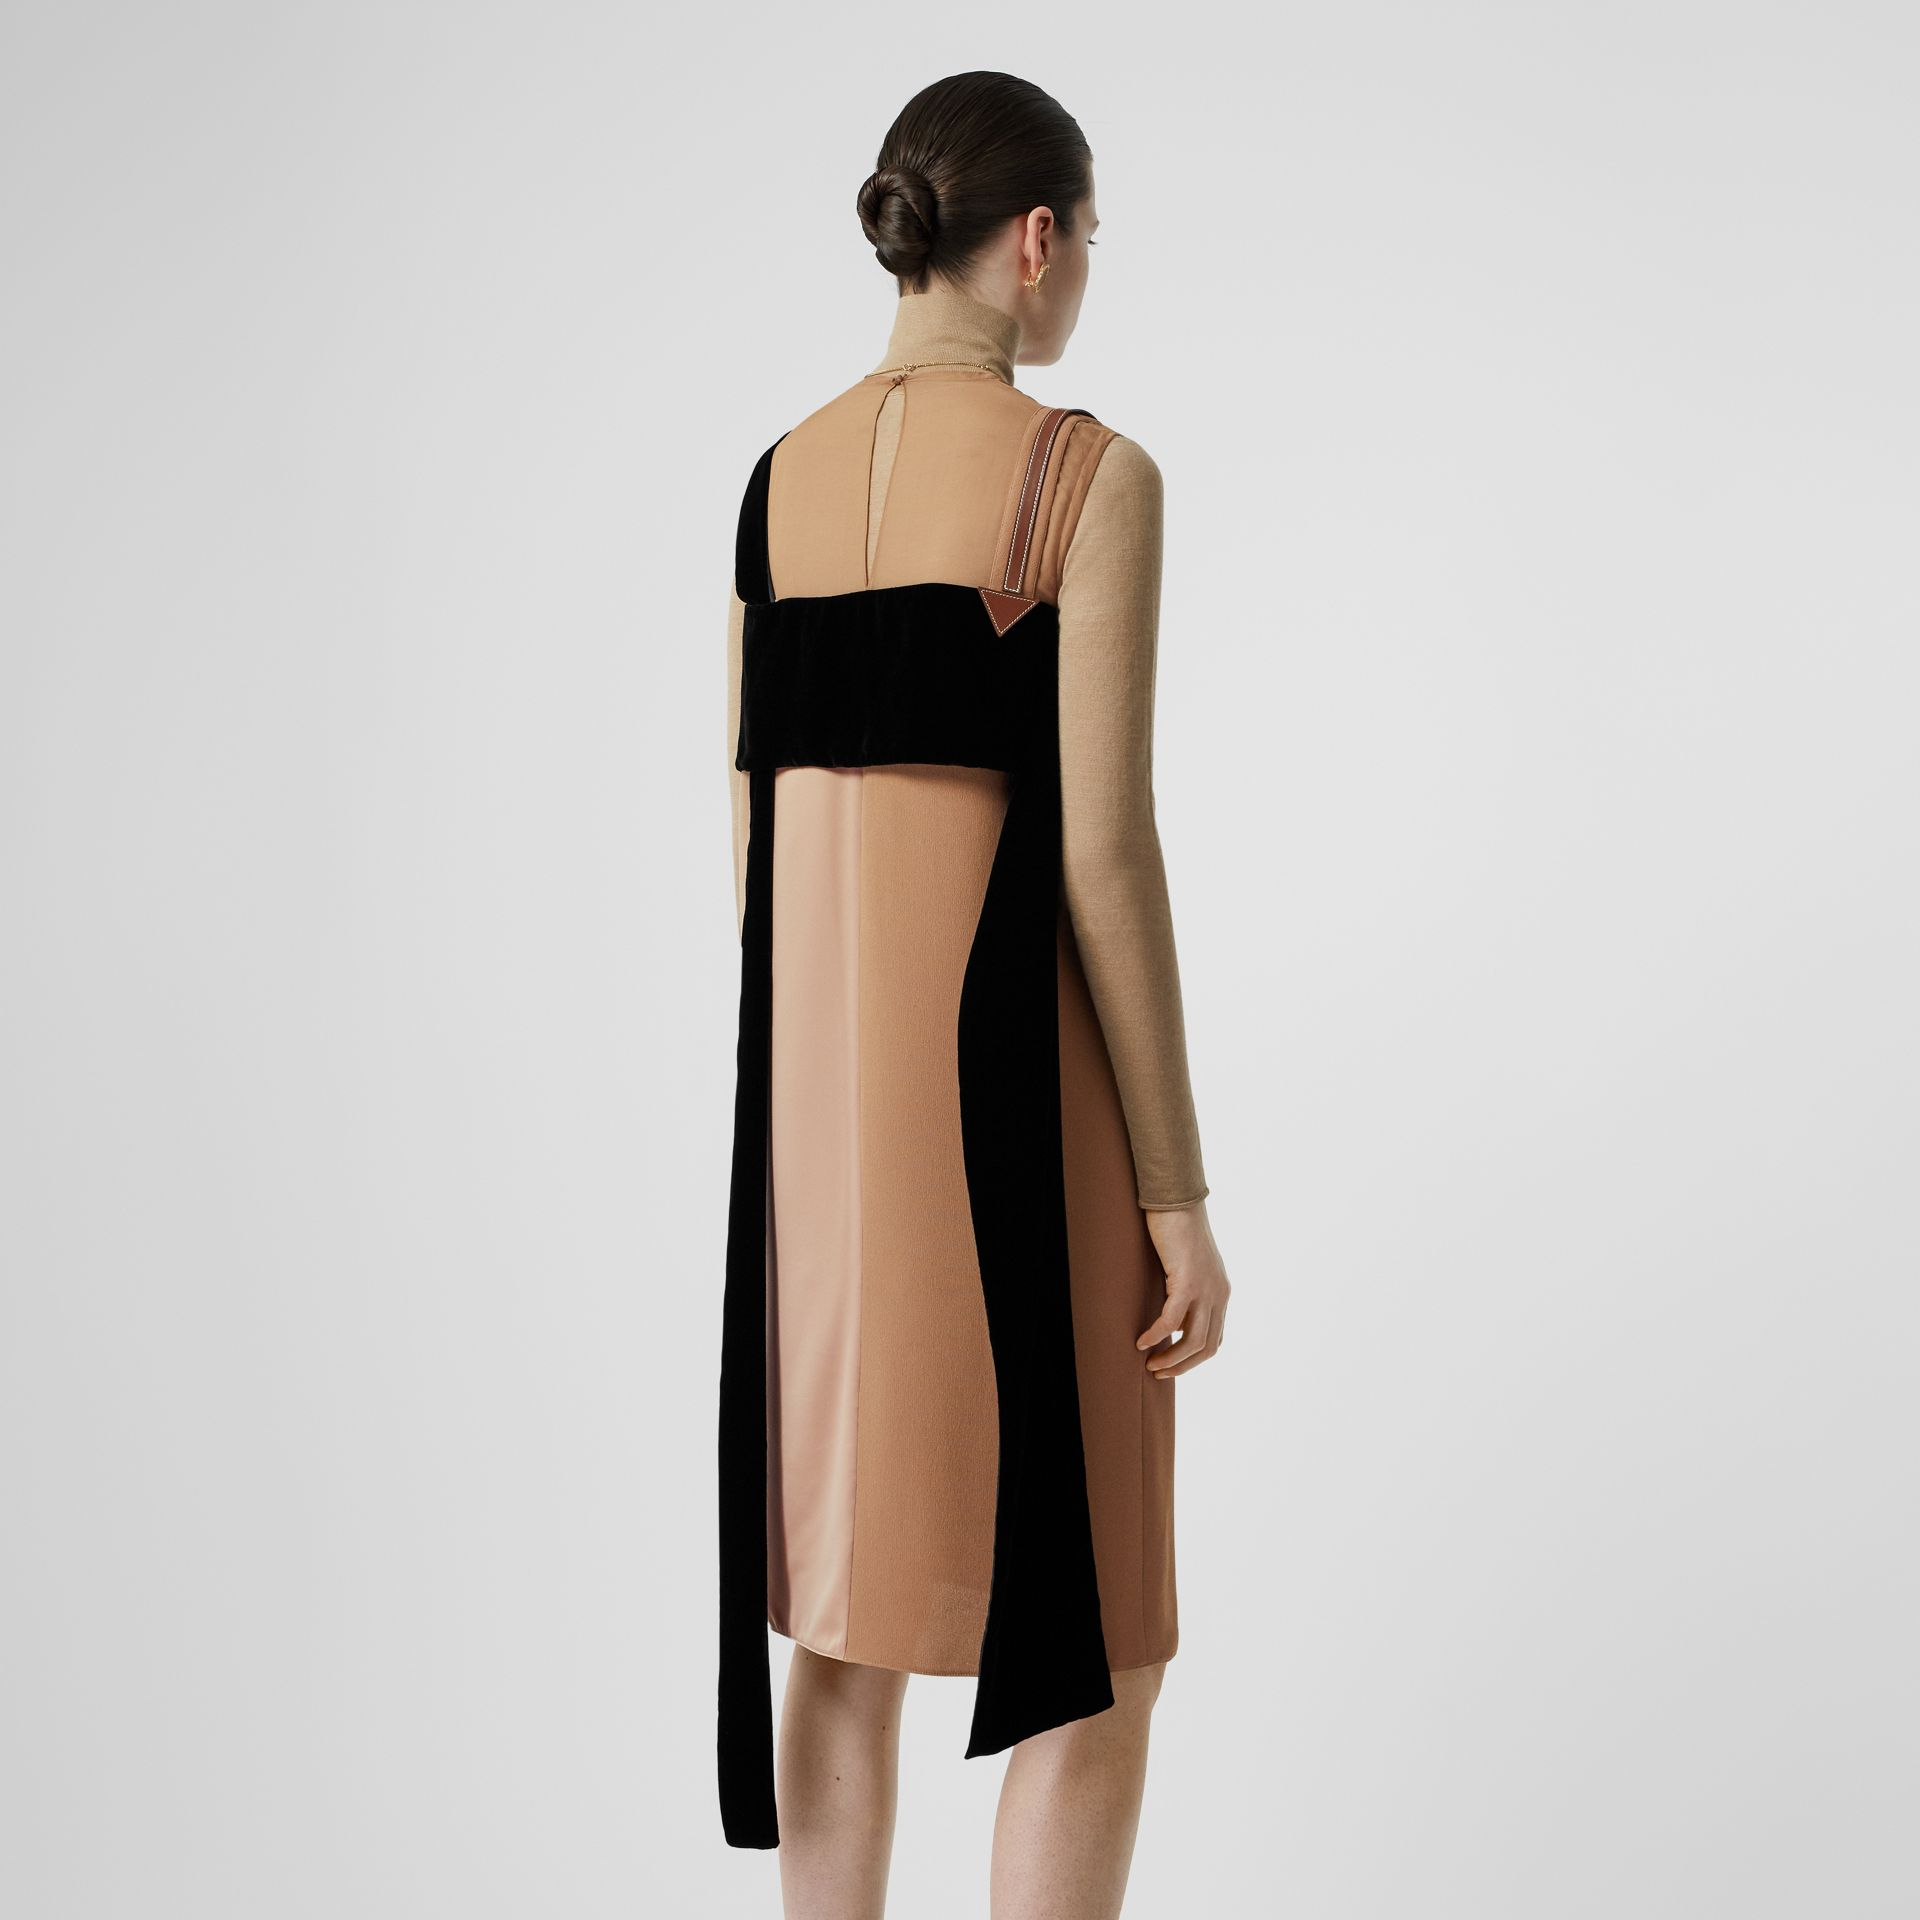 Strap Detail Panelled Silk and Velvet Dress in Biscuit - Women | Burberry Singapore - gallery image 2